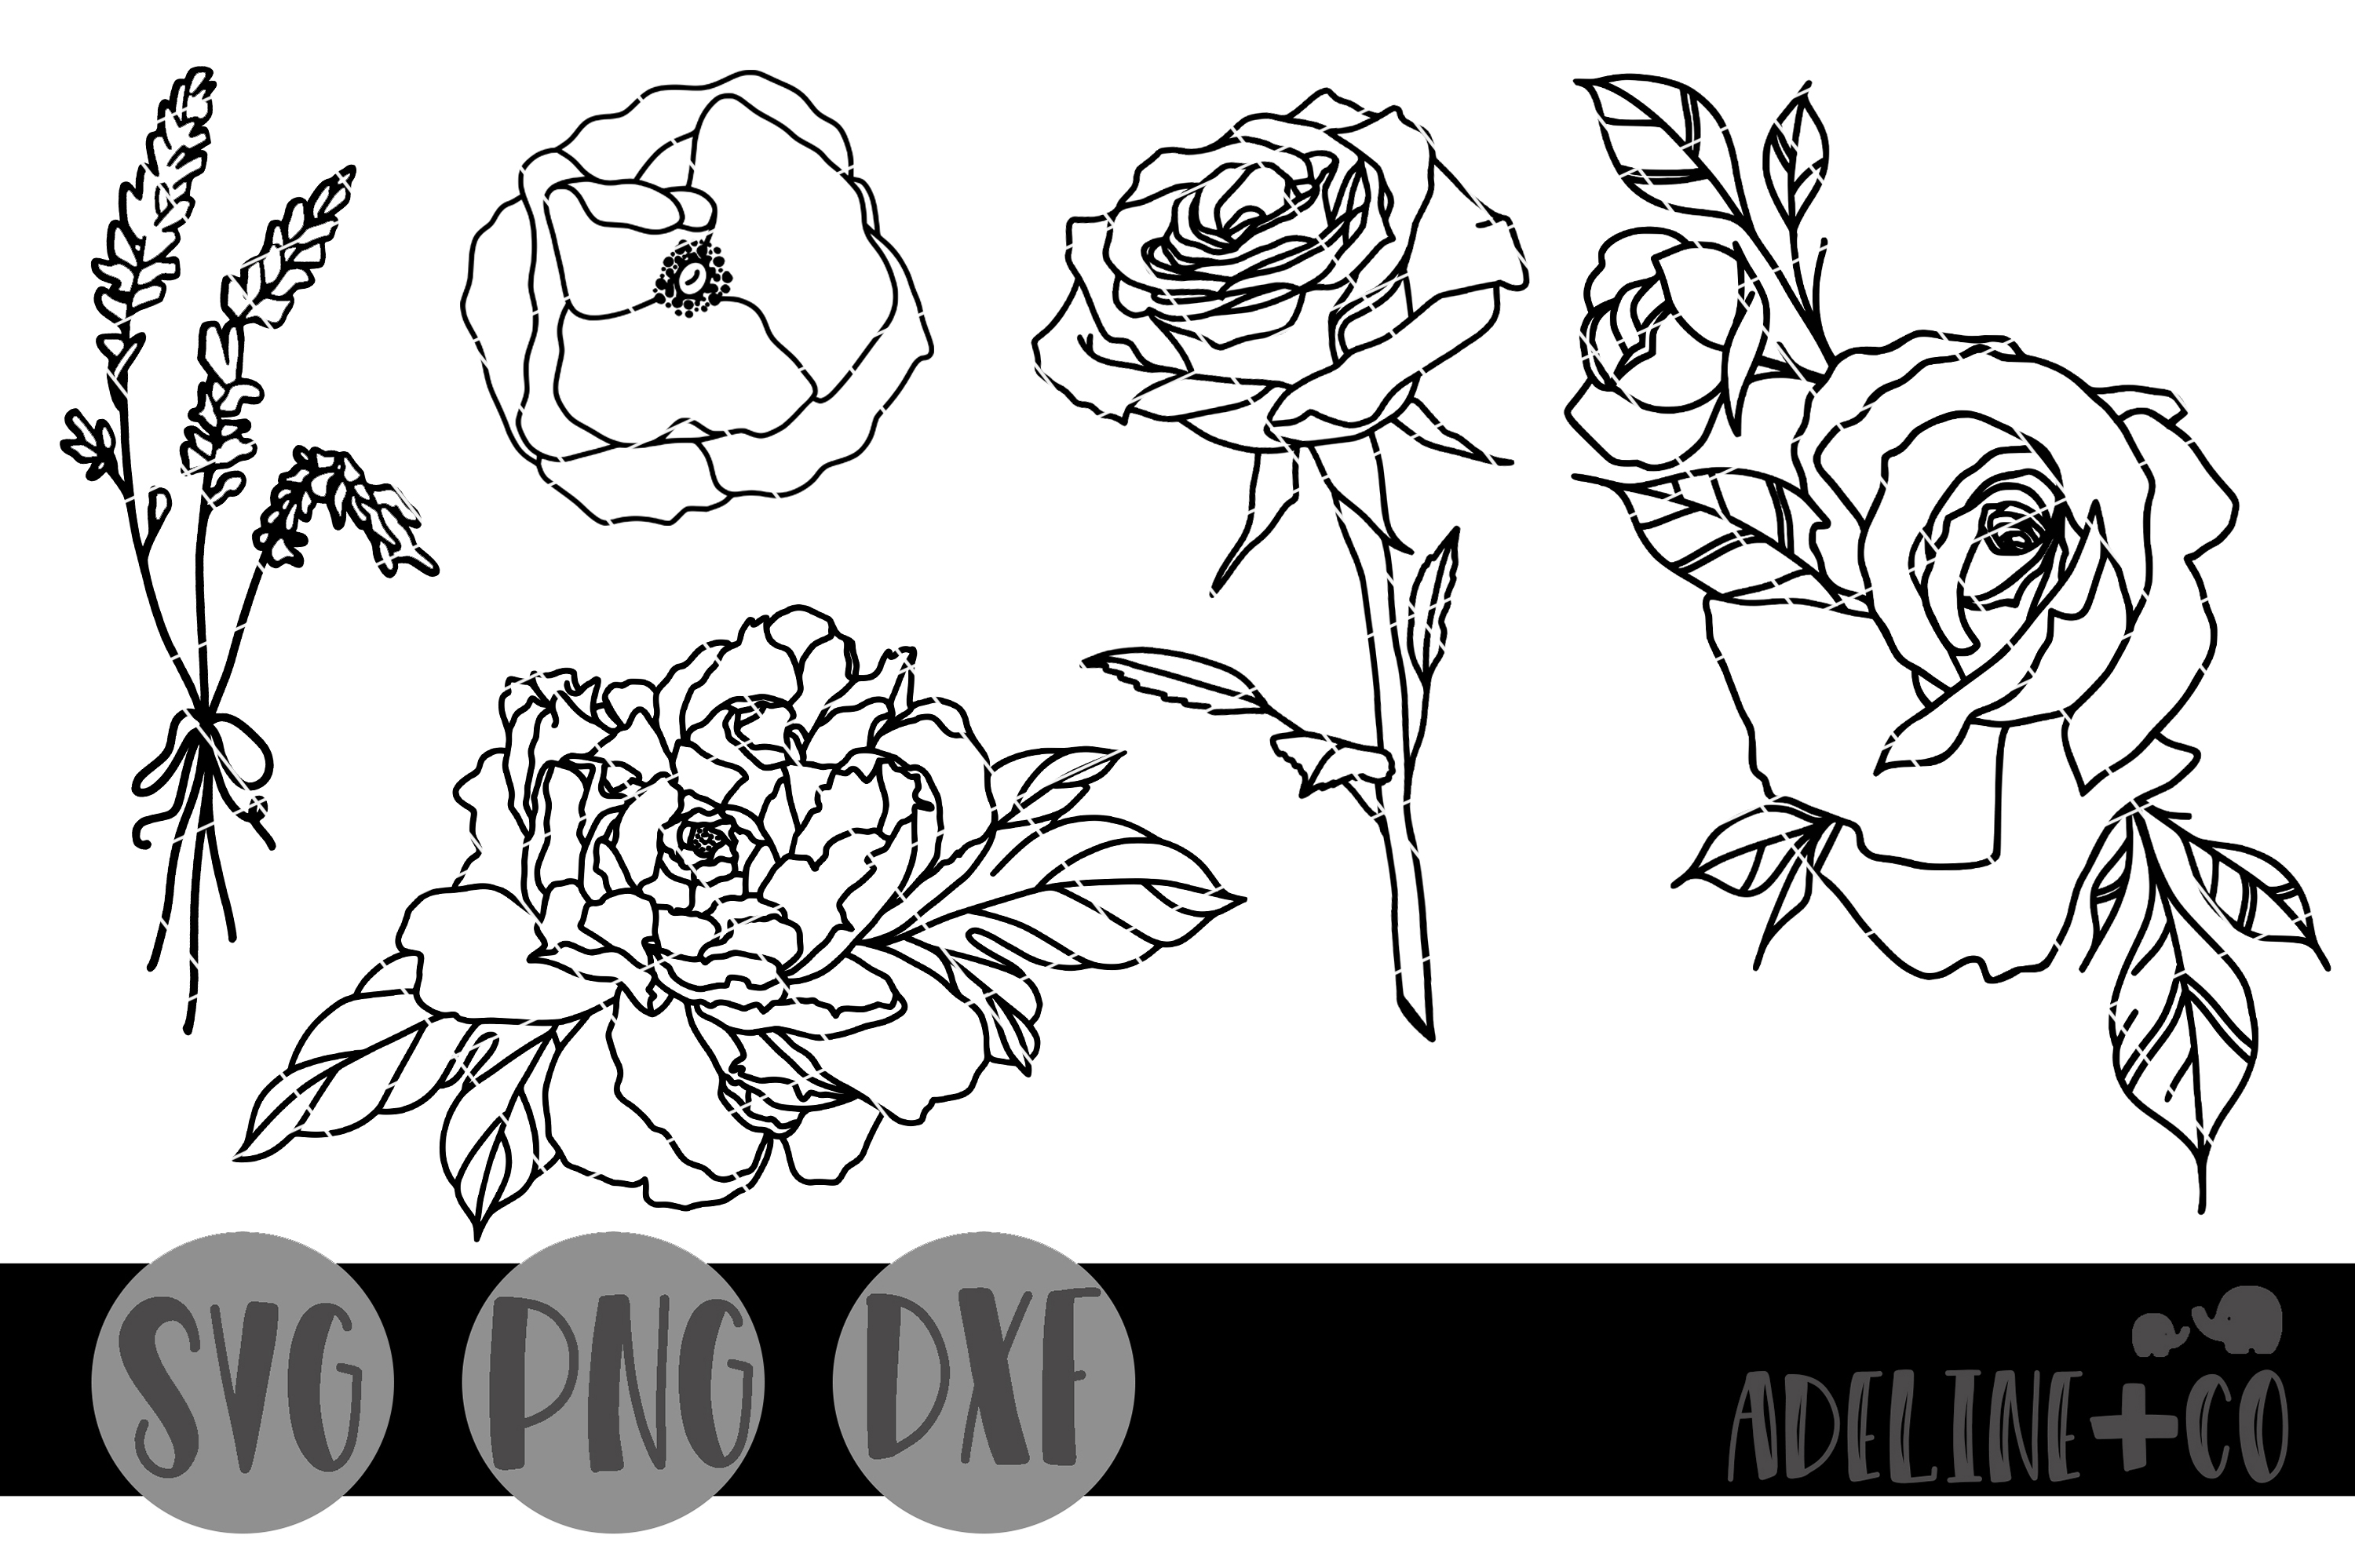 Download Free Flower Outline Bundle Graphic By Adelinenco Creative Fabrica for Cricut Explore, Silhouette and other cutting machines.